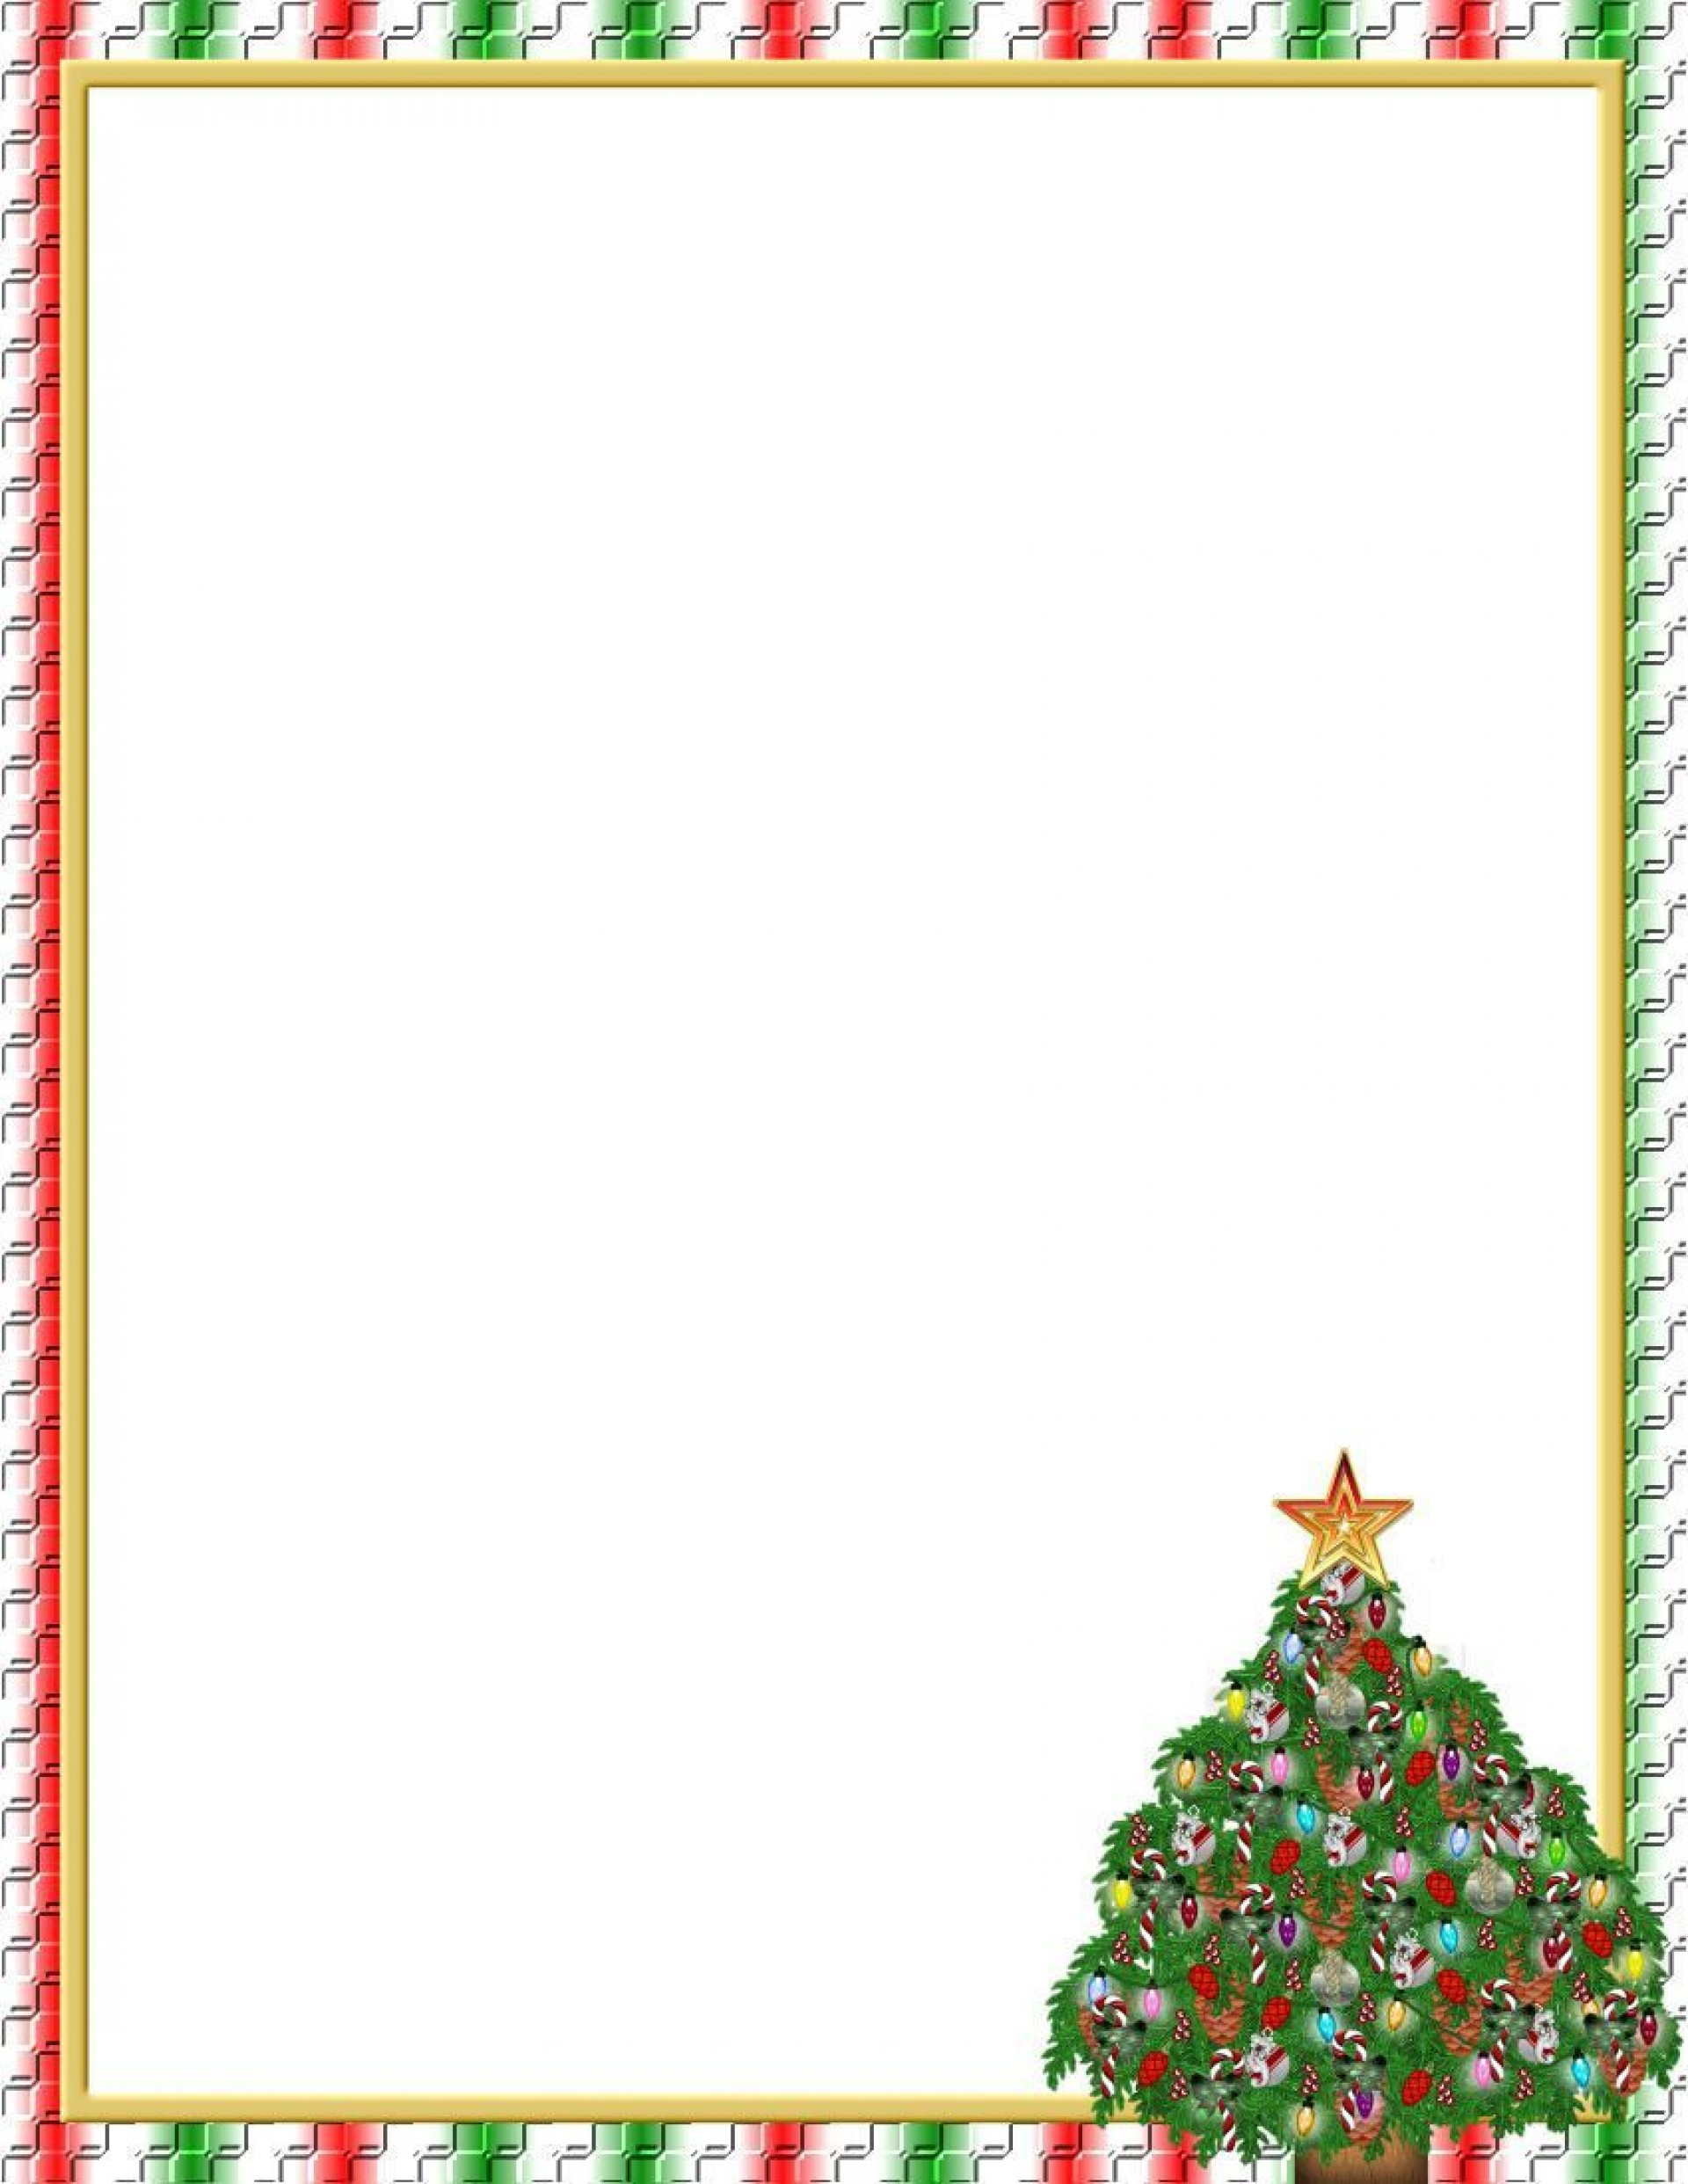 007 Phenomenal Free Christma Letter Template For Microsoft Word Sample  Downloadable Newsletter1920